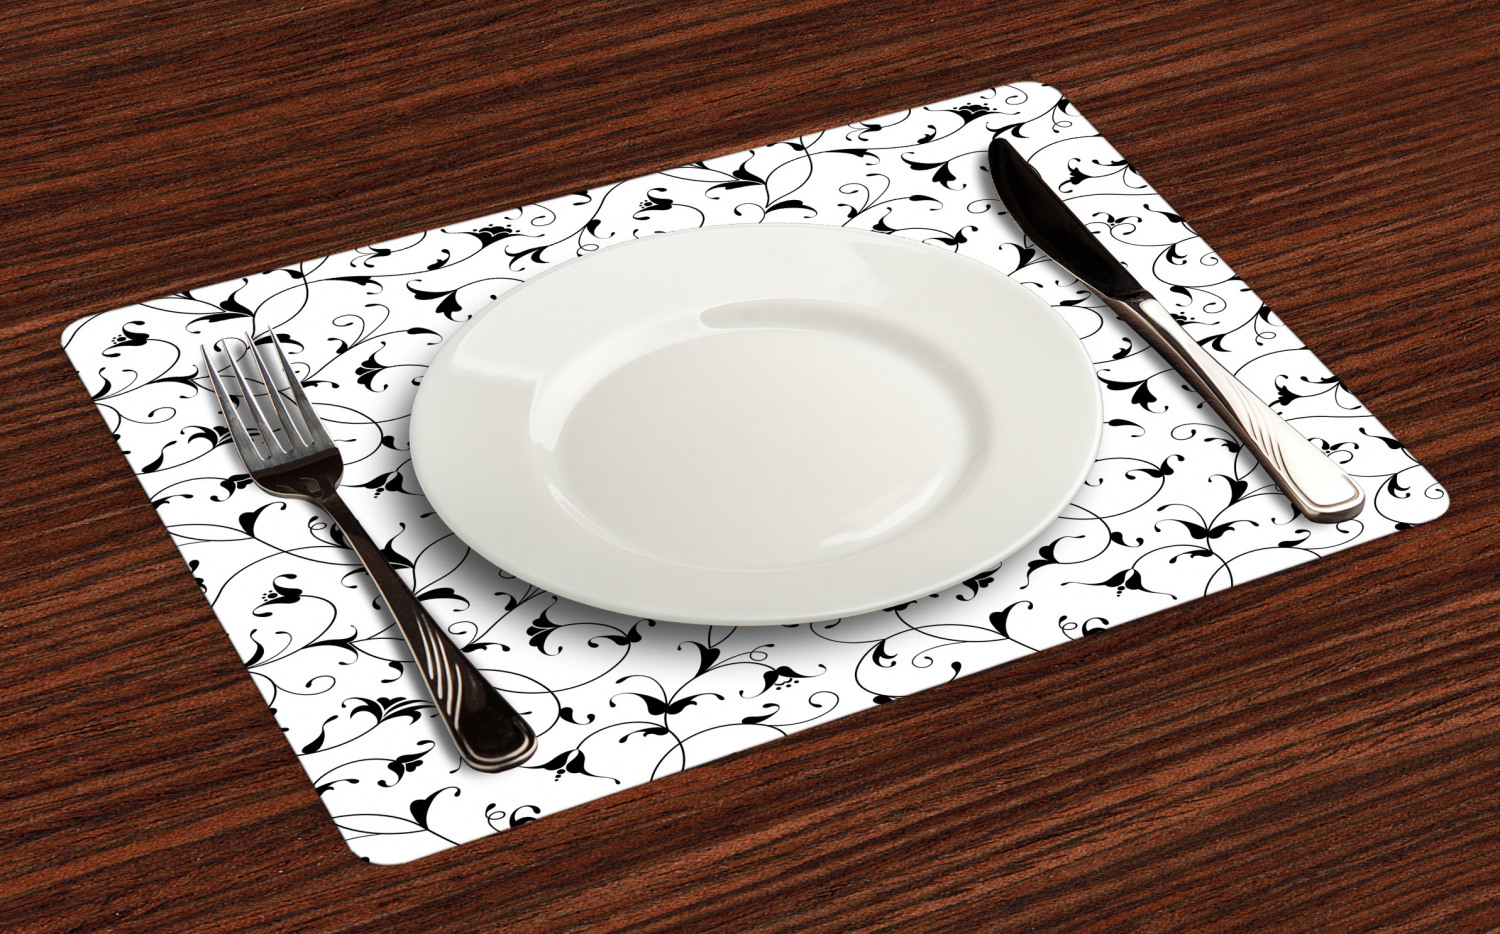 Ambesonne-Flower-Pattern-Placemat-Set-of-4-Fabric-Place-Mats-for-Table-Decor thumbnail 157